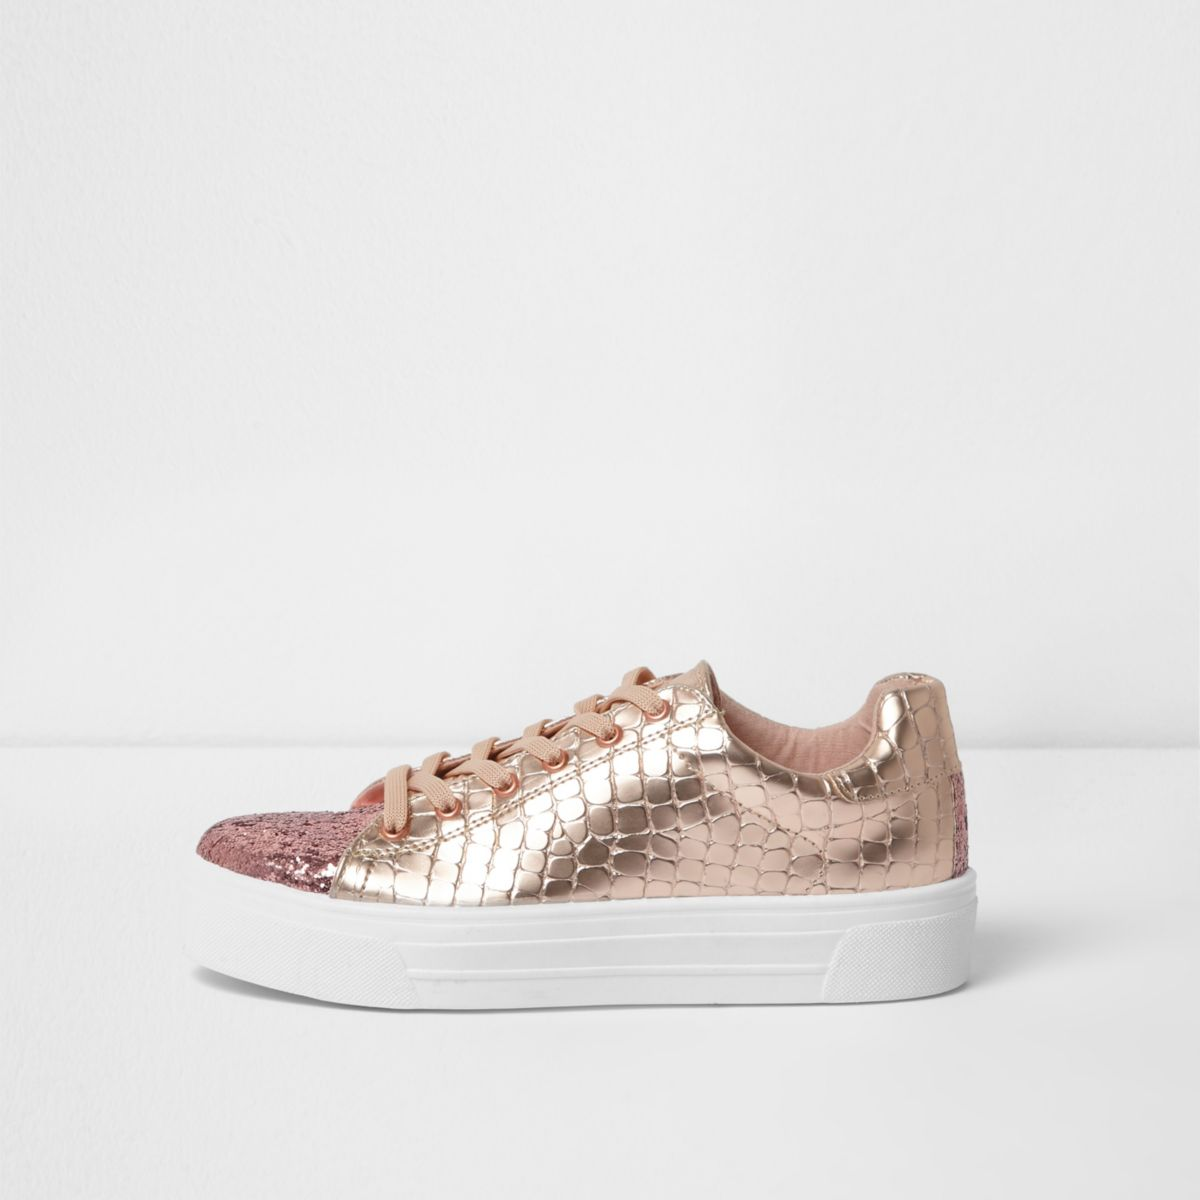 Rose gold metallic glitter lace-up sneakers